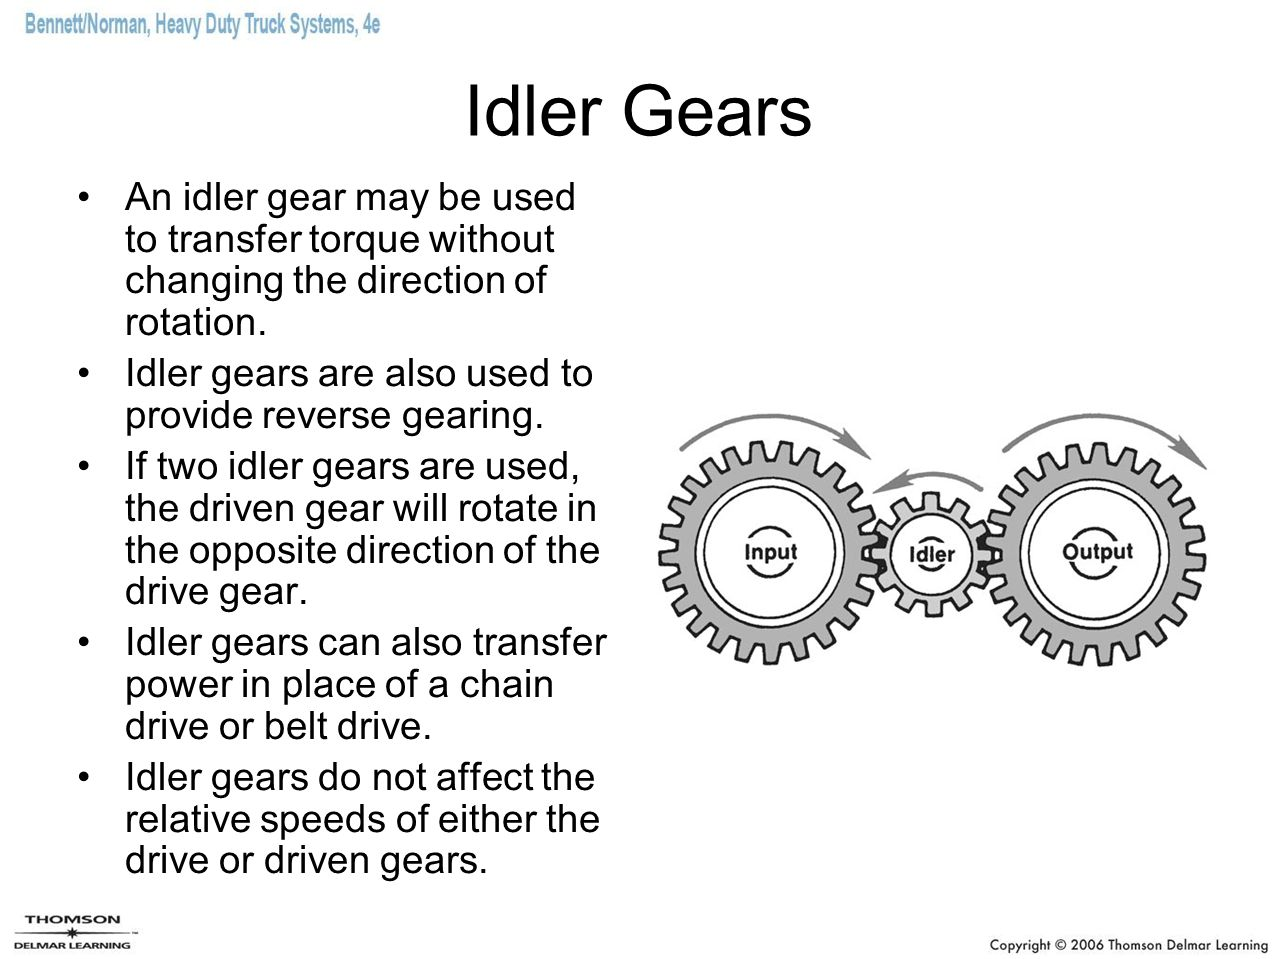 Idler Gears An idler gear may be used to transfer torque without changing the direction of rotation. Idler gears are also used to provide reverse gear